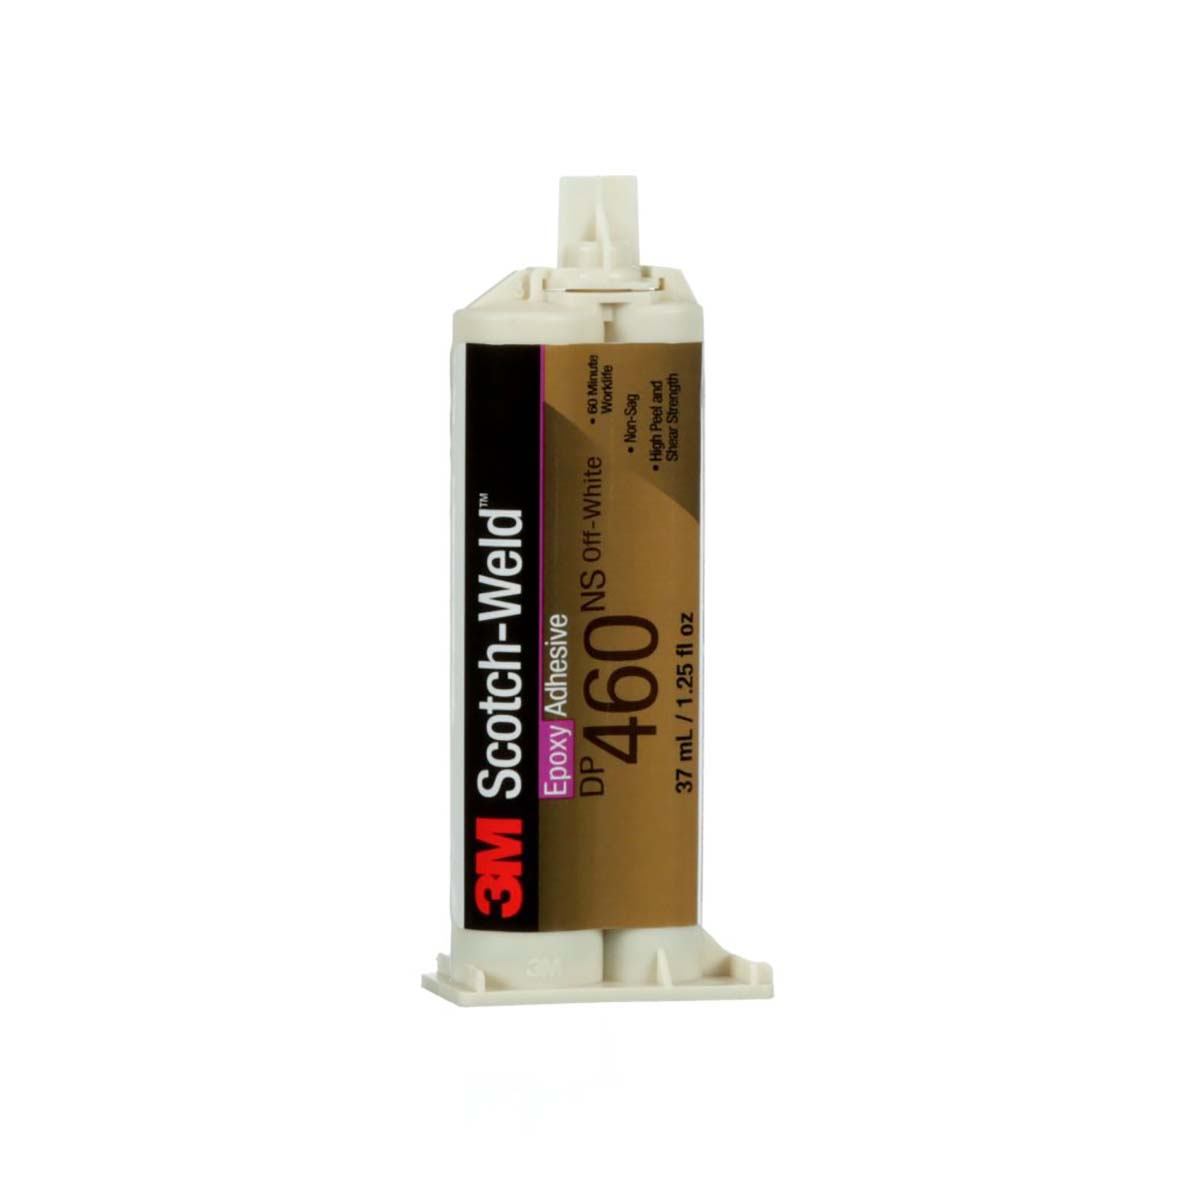 3M Scotch-Weld Epoxy Adhesive DP460NS Off-White, 50 mL, 12 per case